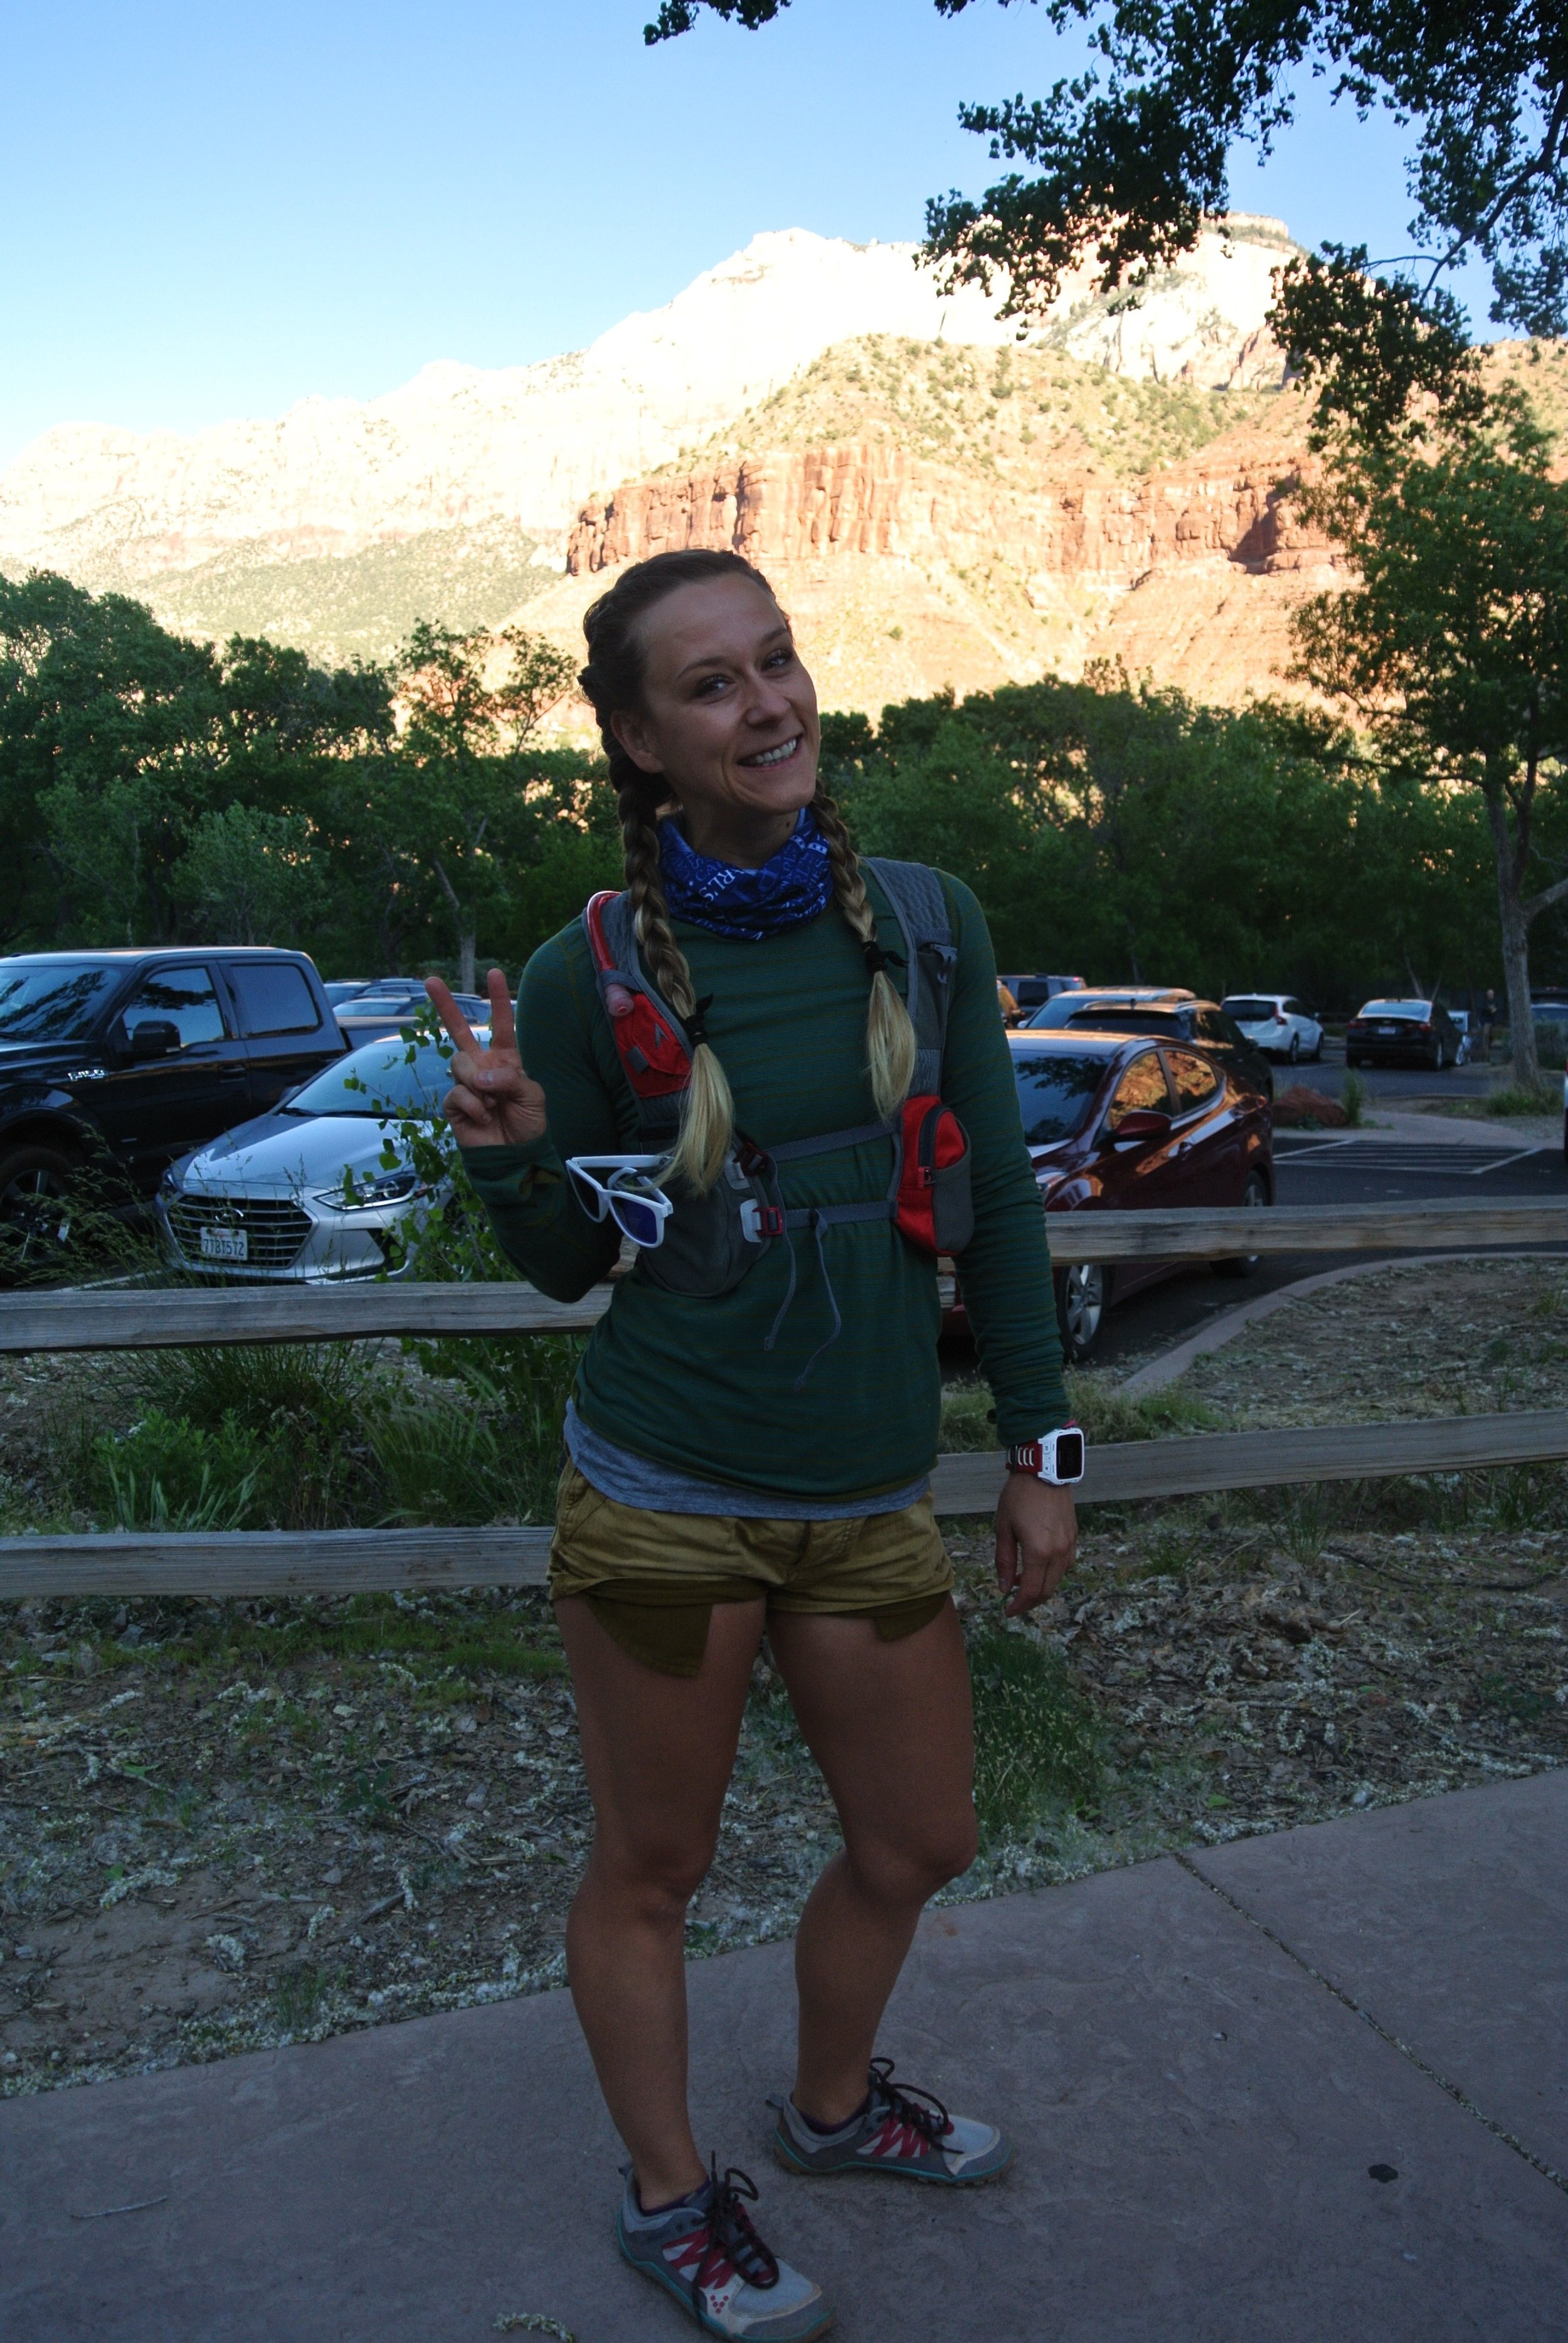 This photo brought to you by dirty hair. Visitor's Center, Zion National Park.